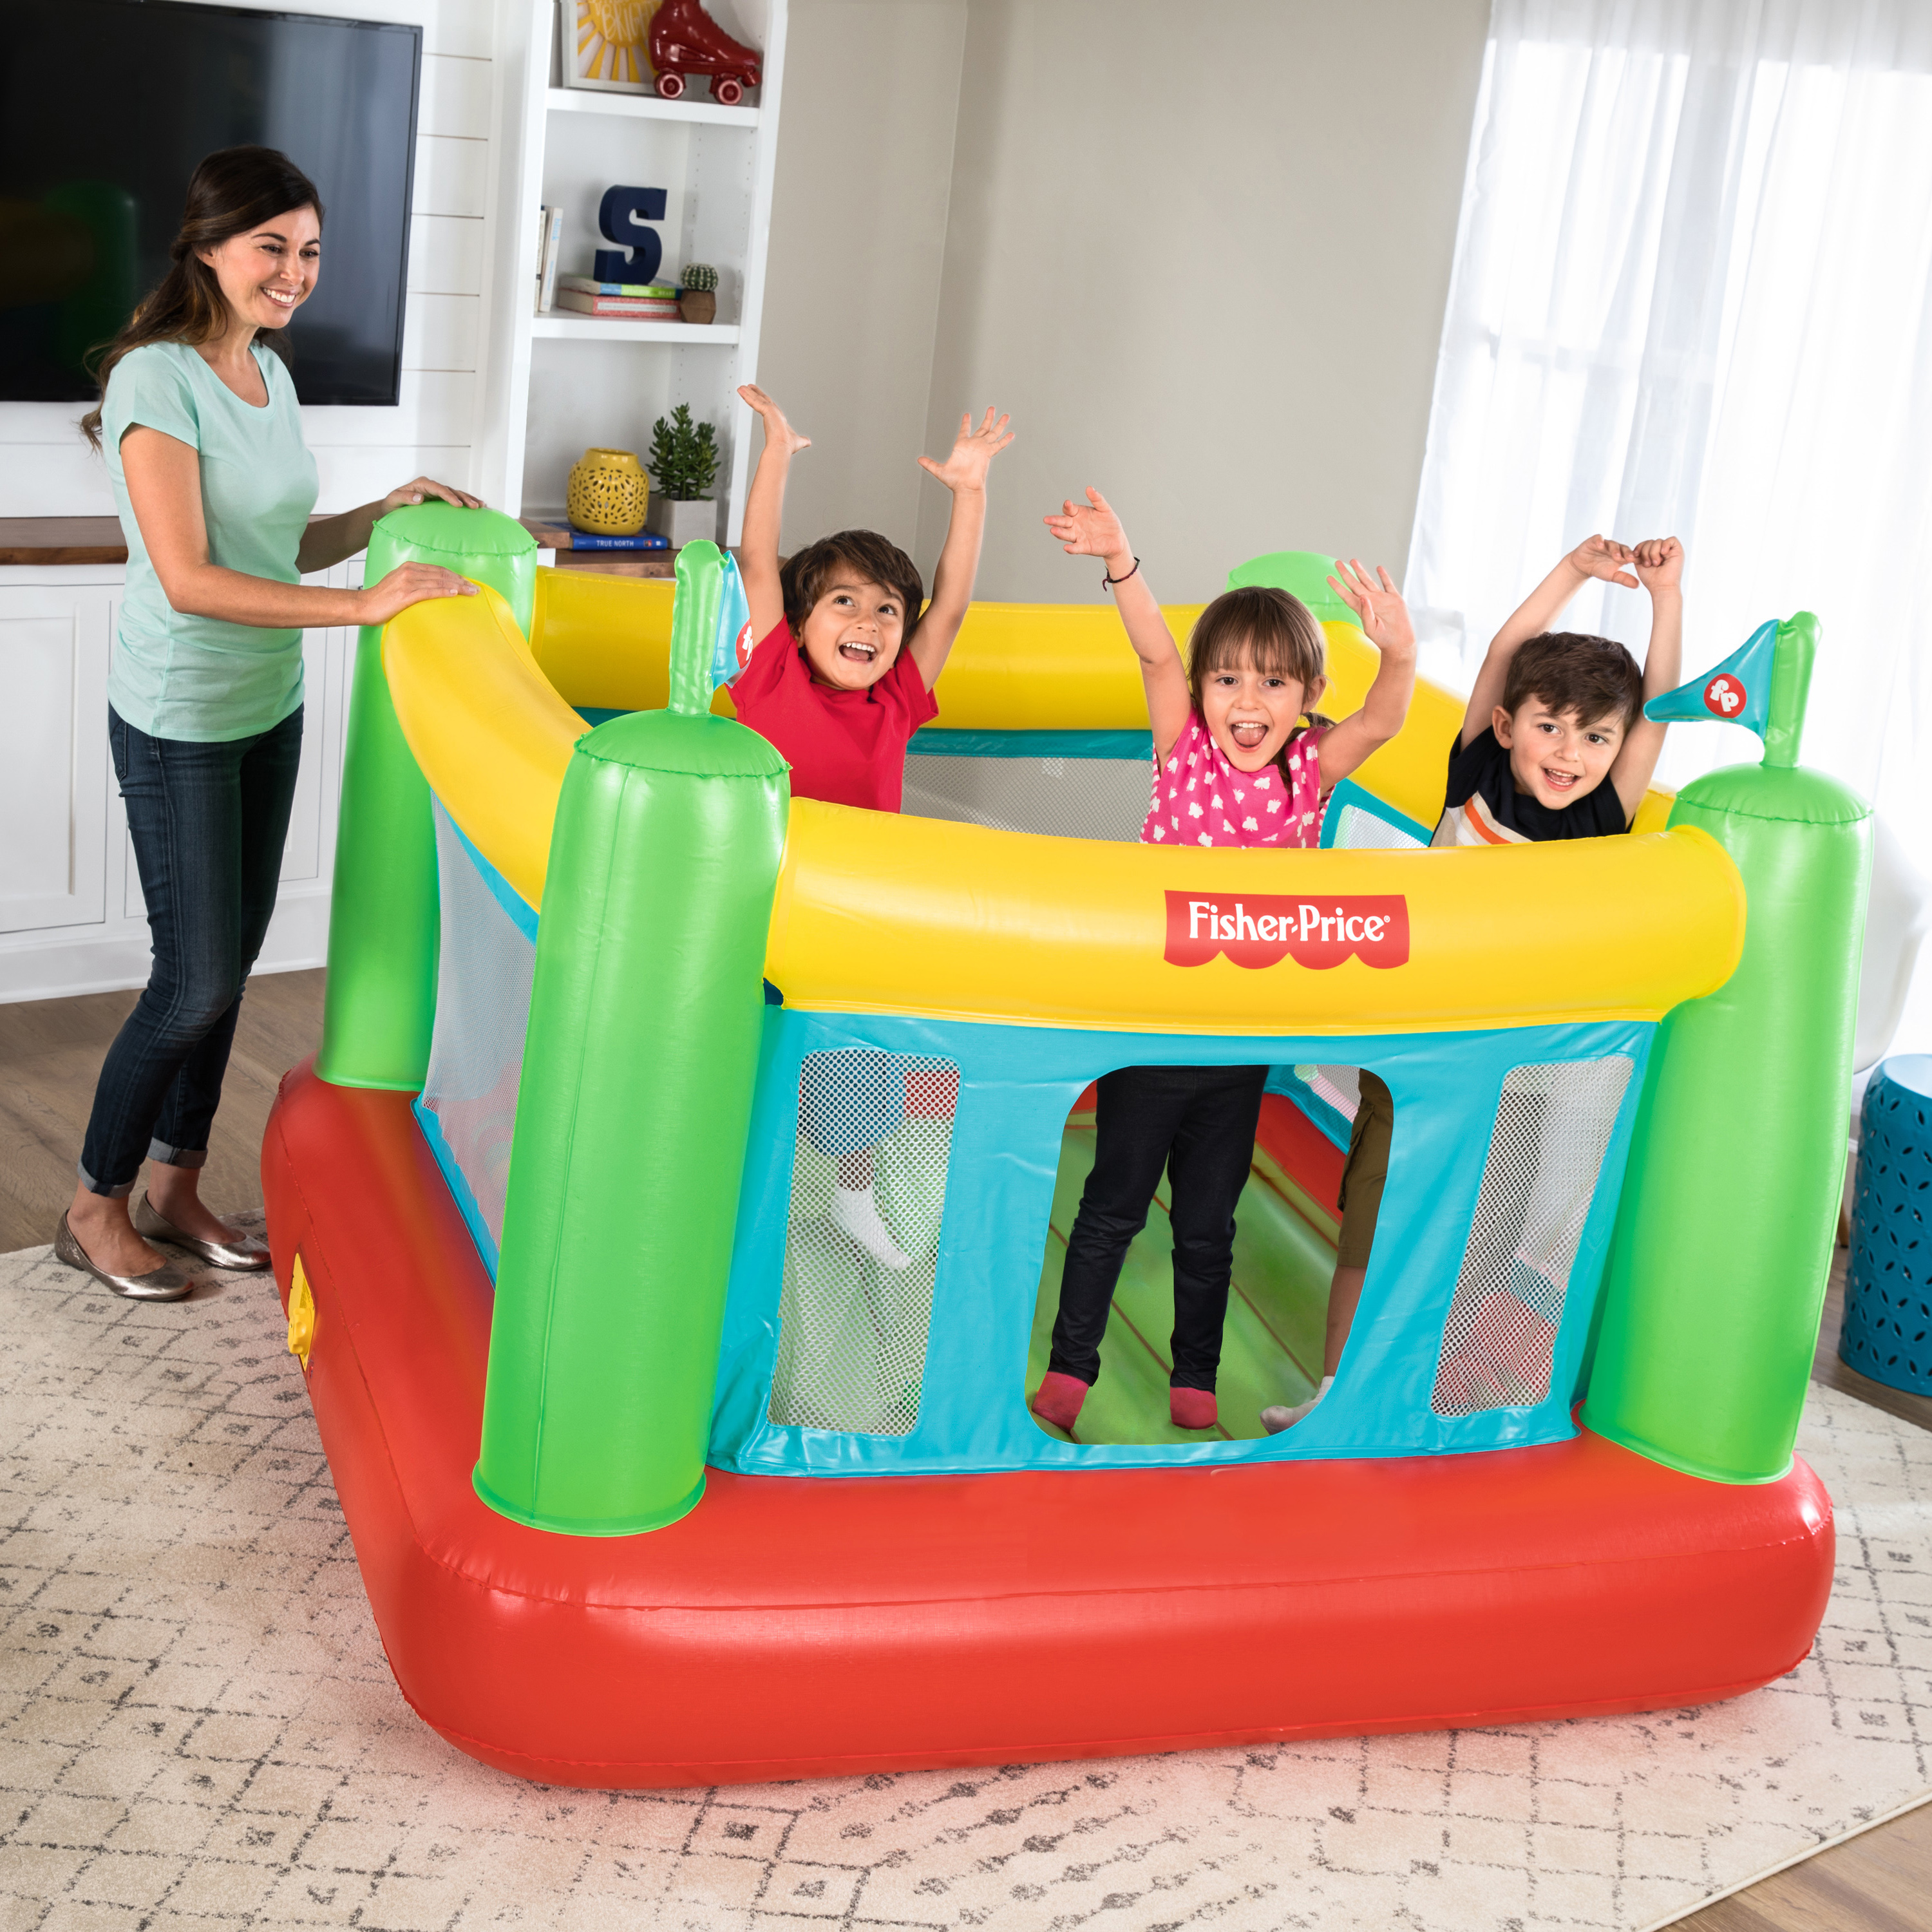 "Fisher-Price 69"" x 68"" x 53"" Bouncer with Built-in Pump"